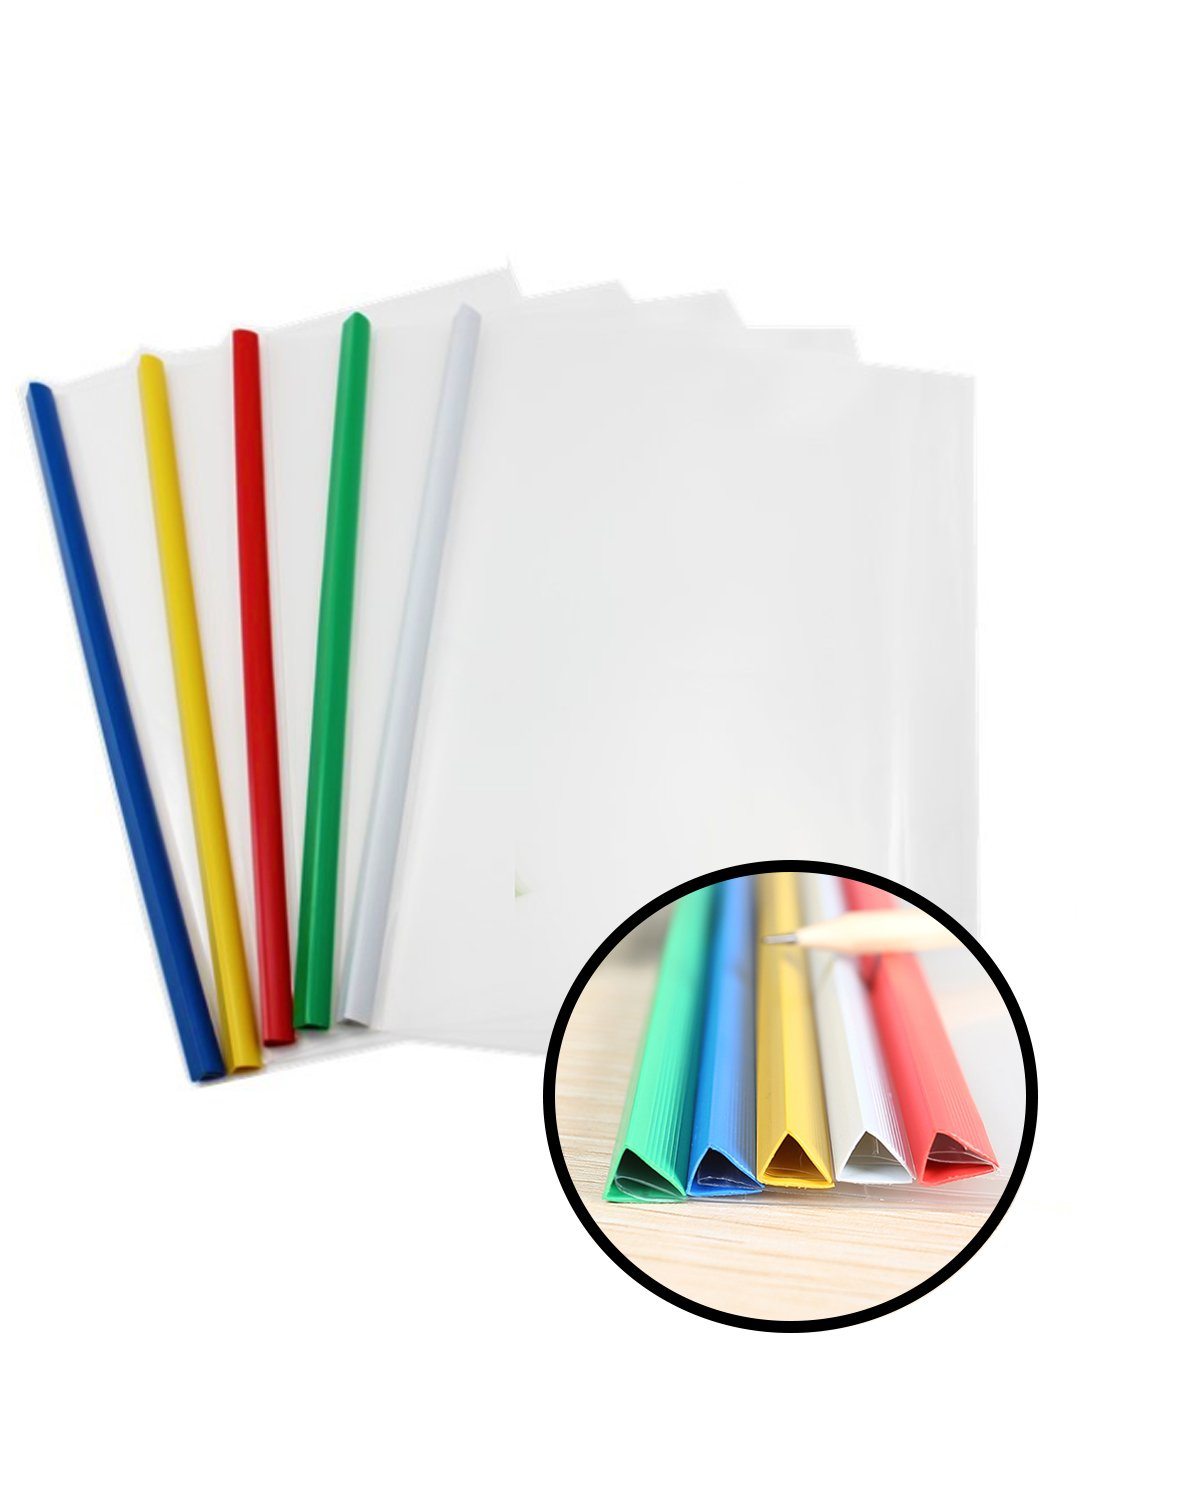 PRALB 25PCS Standard Sliding Bar Translucent Design Project File,Report Covers for A4,Perfect for School and Office,5 Color